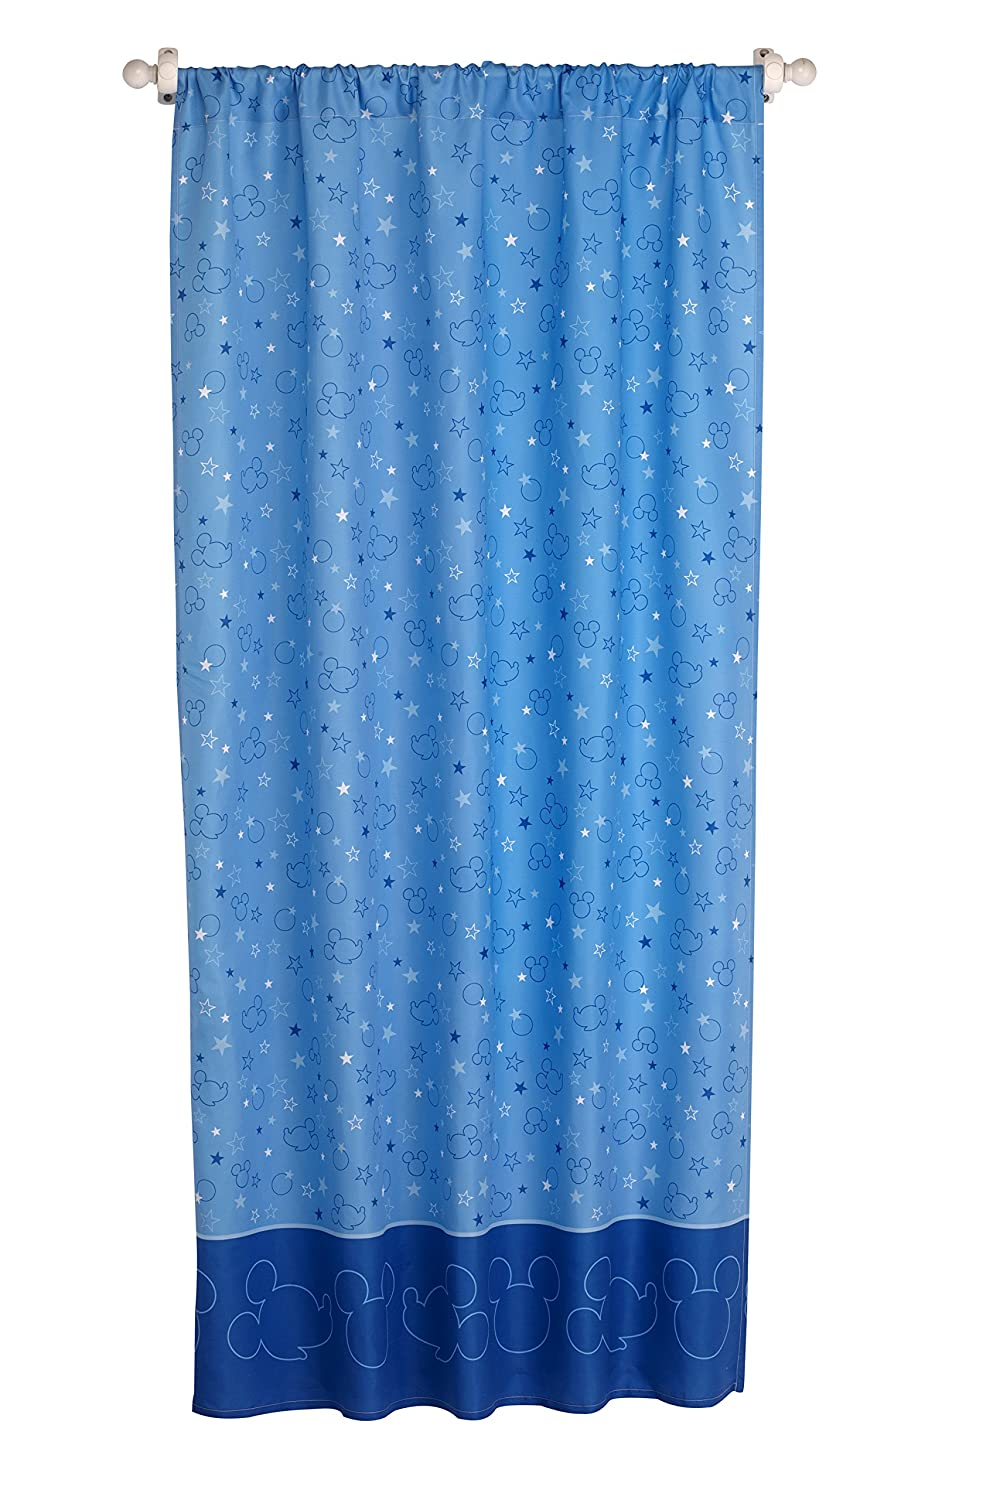 Disney Mickey Mouse Playground Pals Curtain Panel, Blue Crown Crafts Inc 4033175